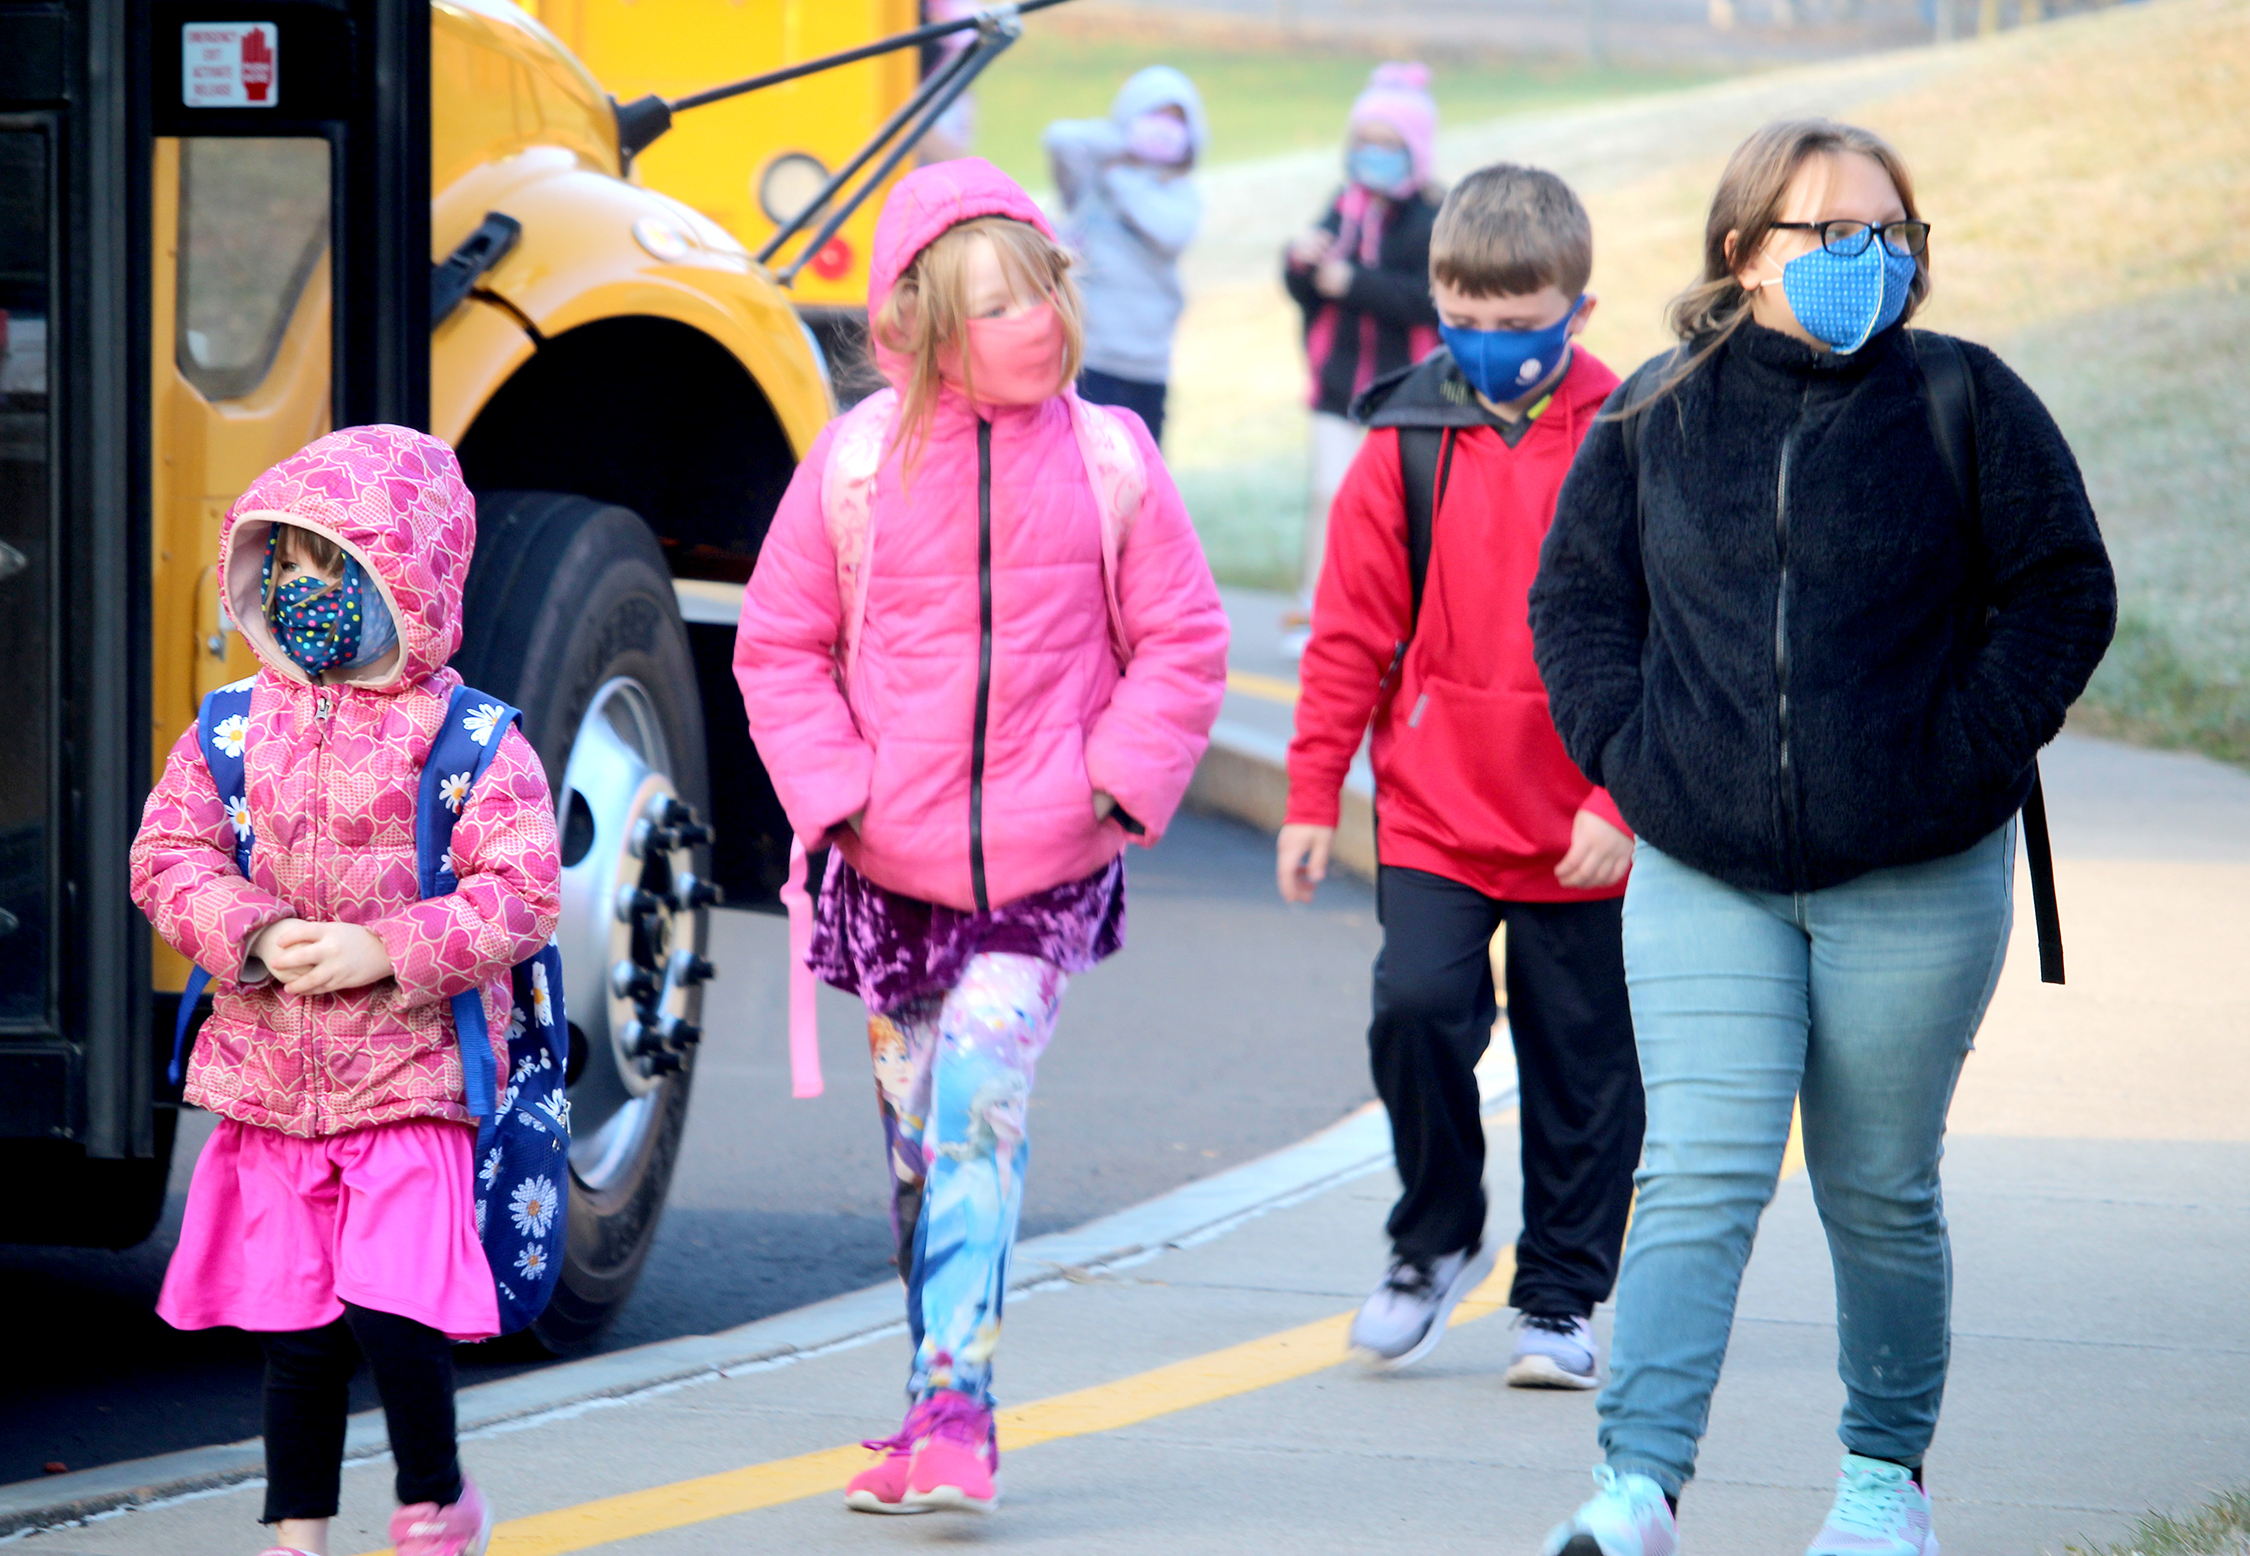 Students return to school (2/2021)